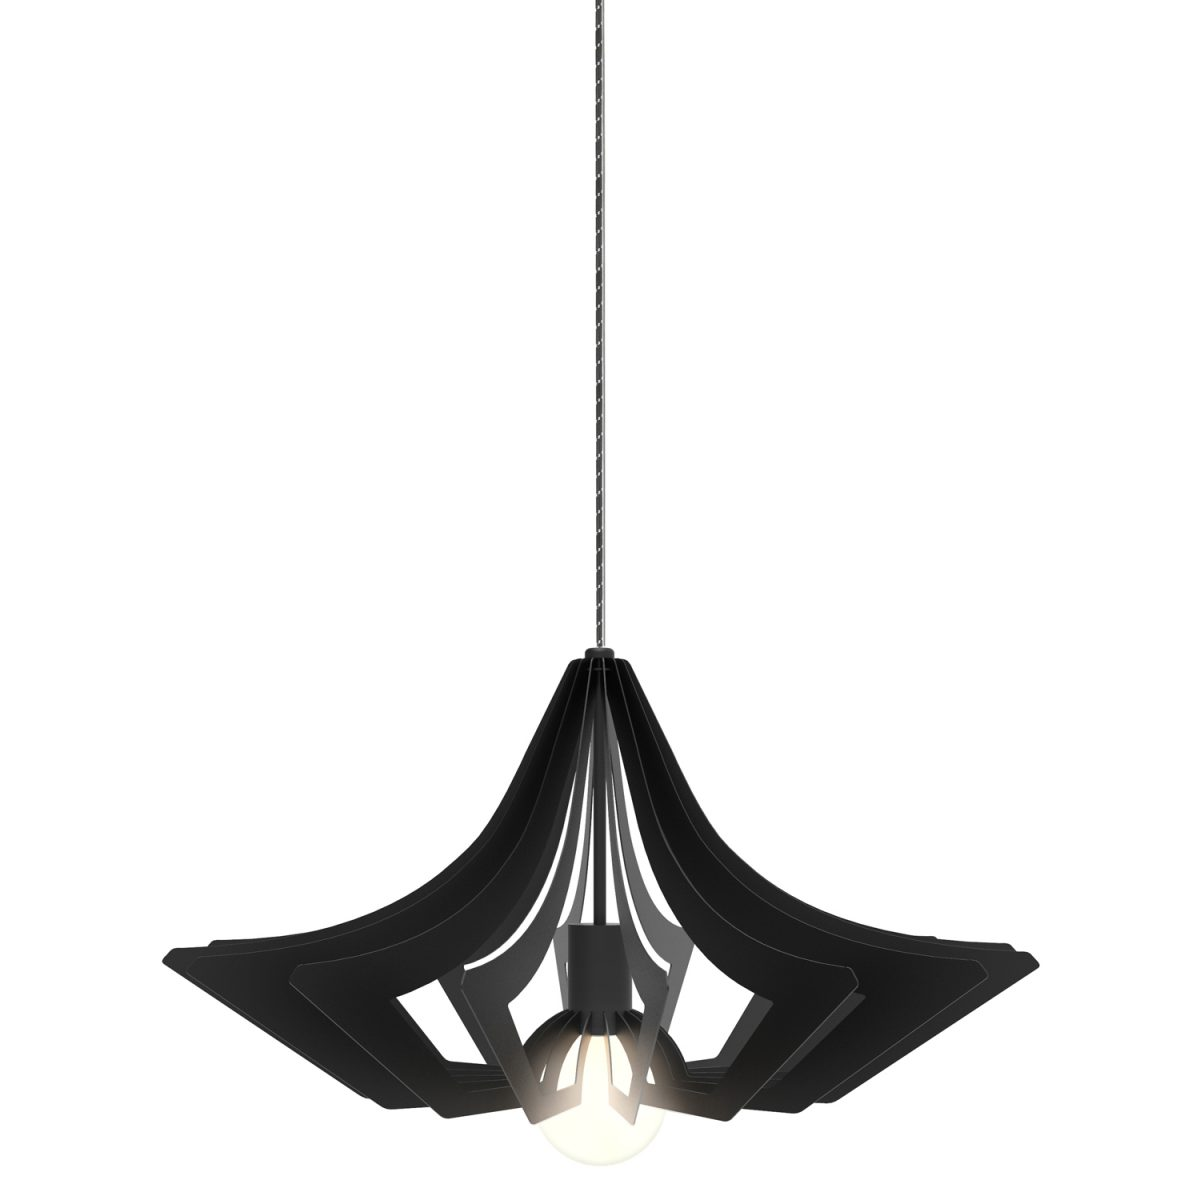 JSPR Beaudine II Black Opaque Project Verlichting Dutch Design